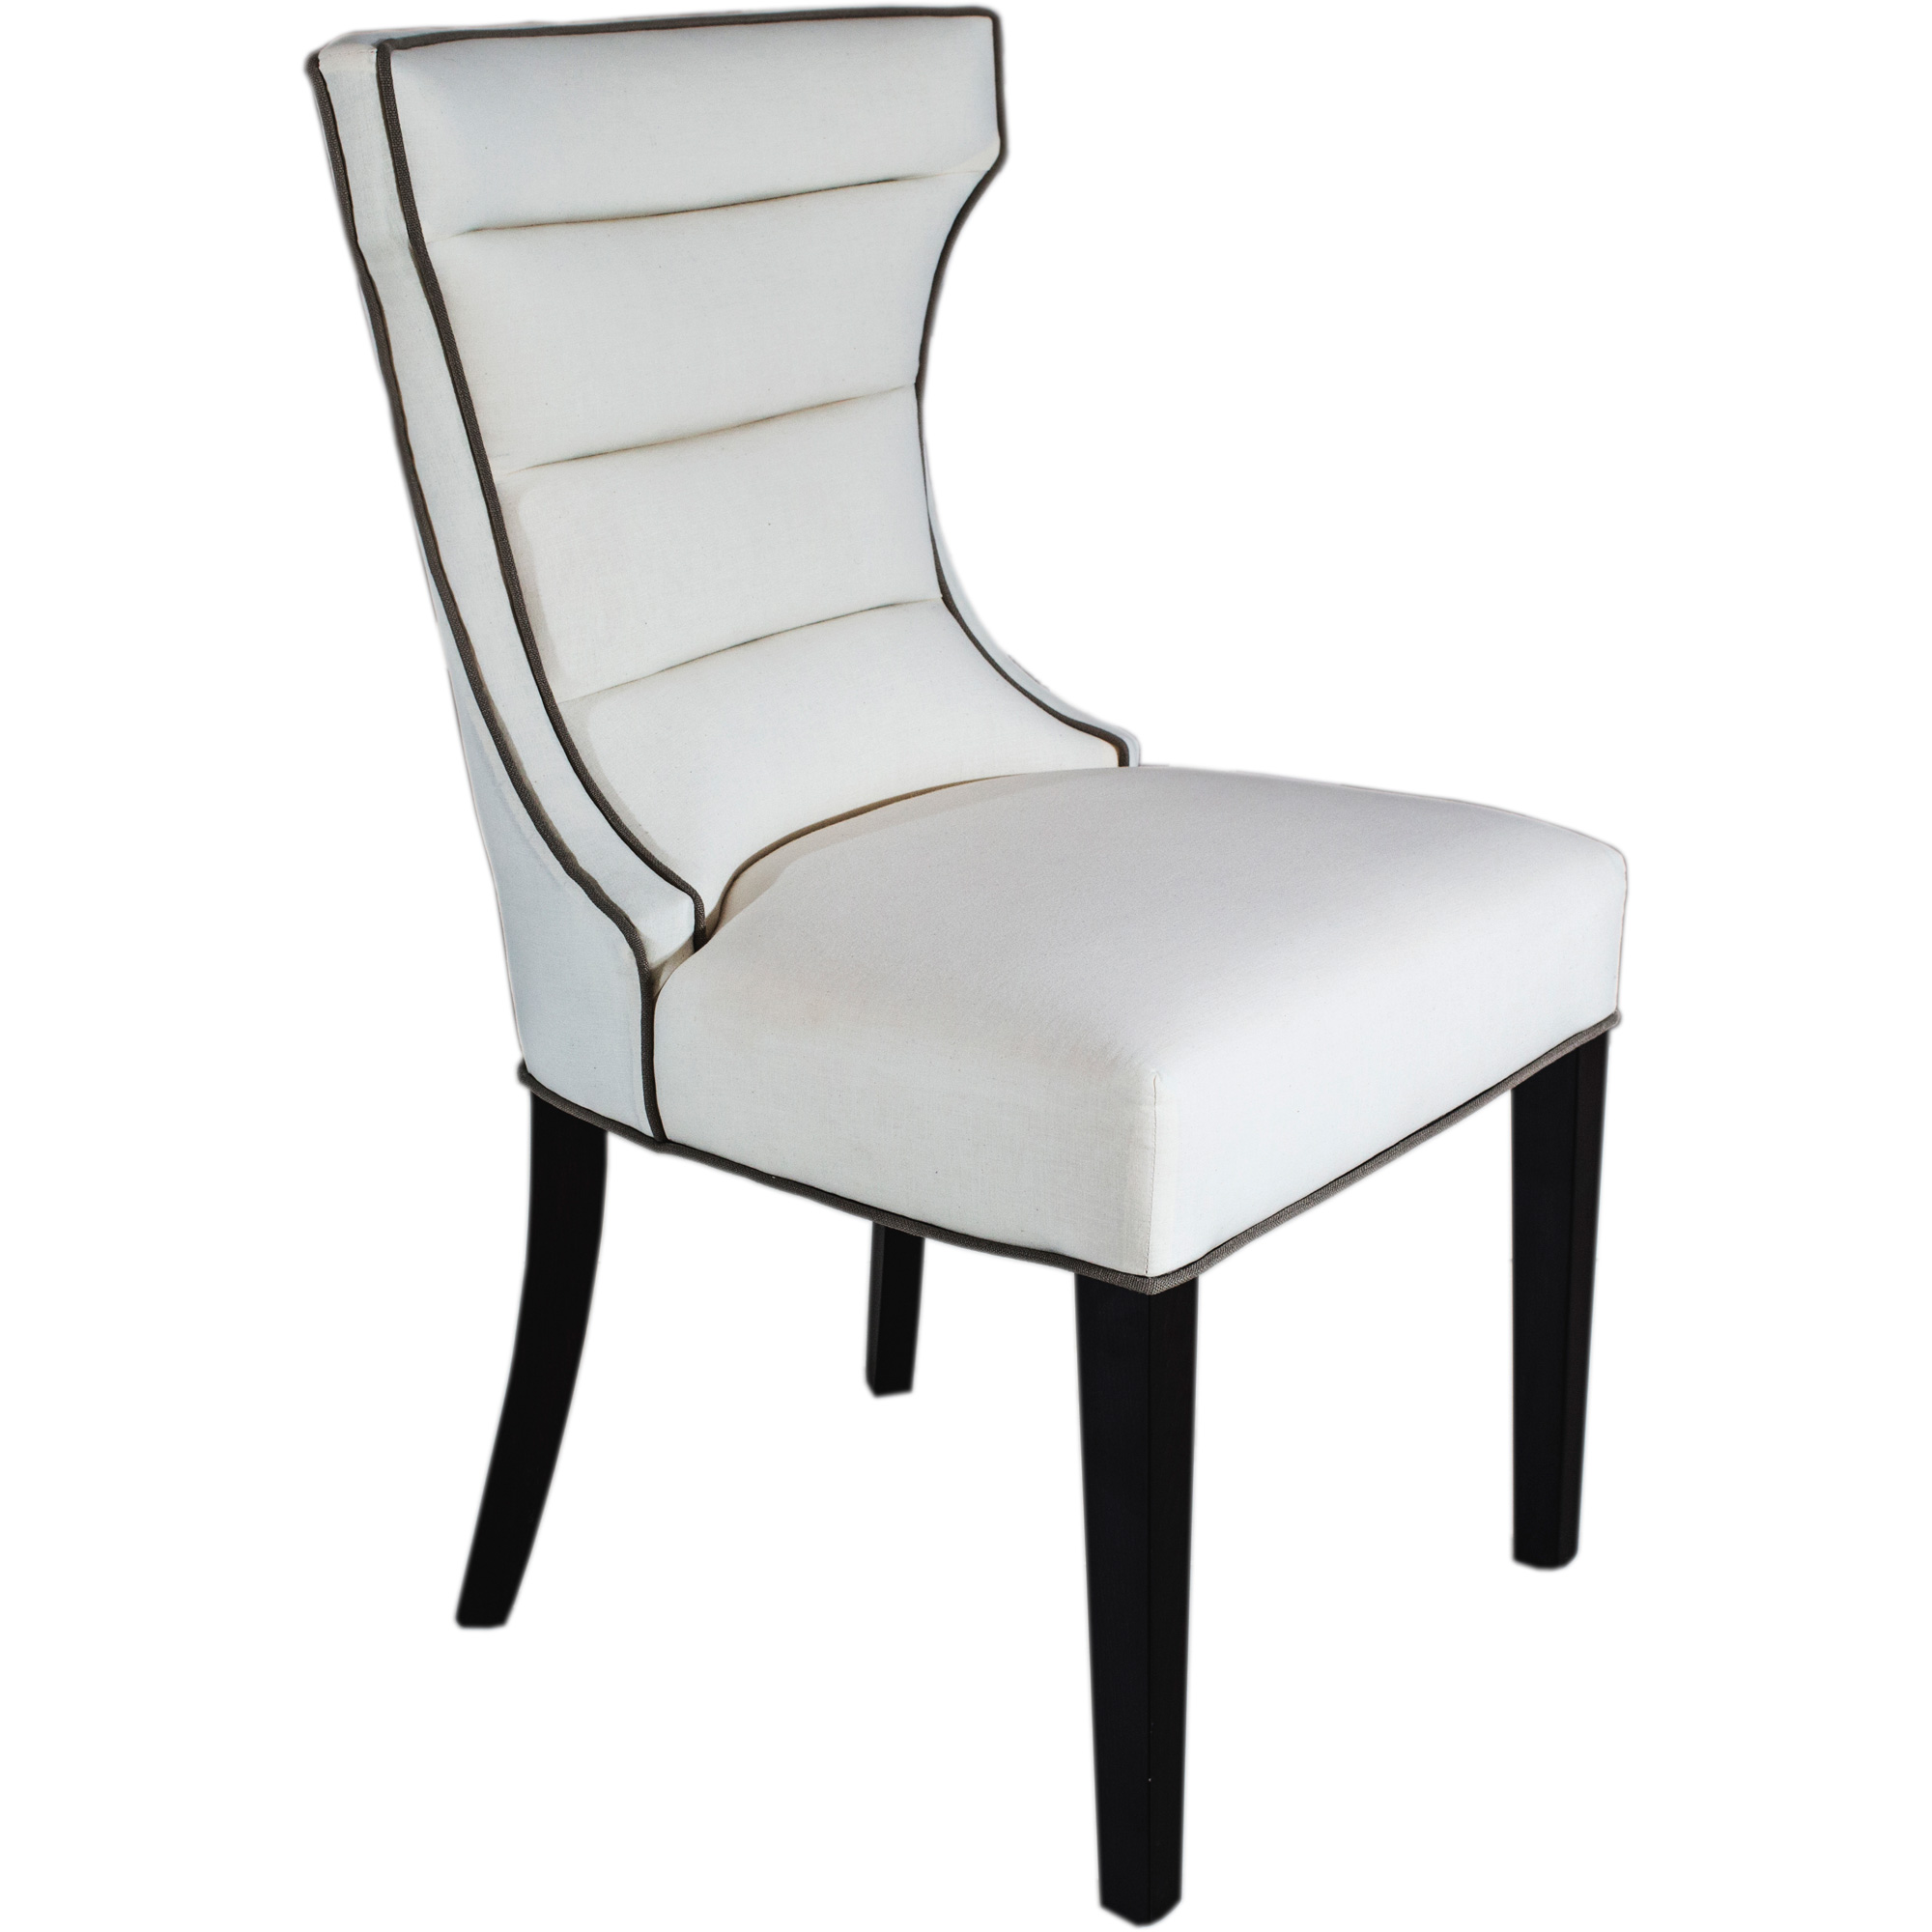 Bolton Dining Chair on white side view